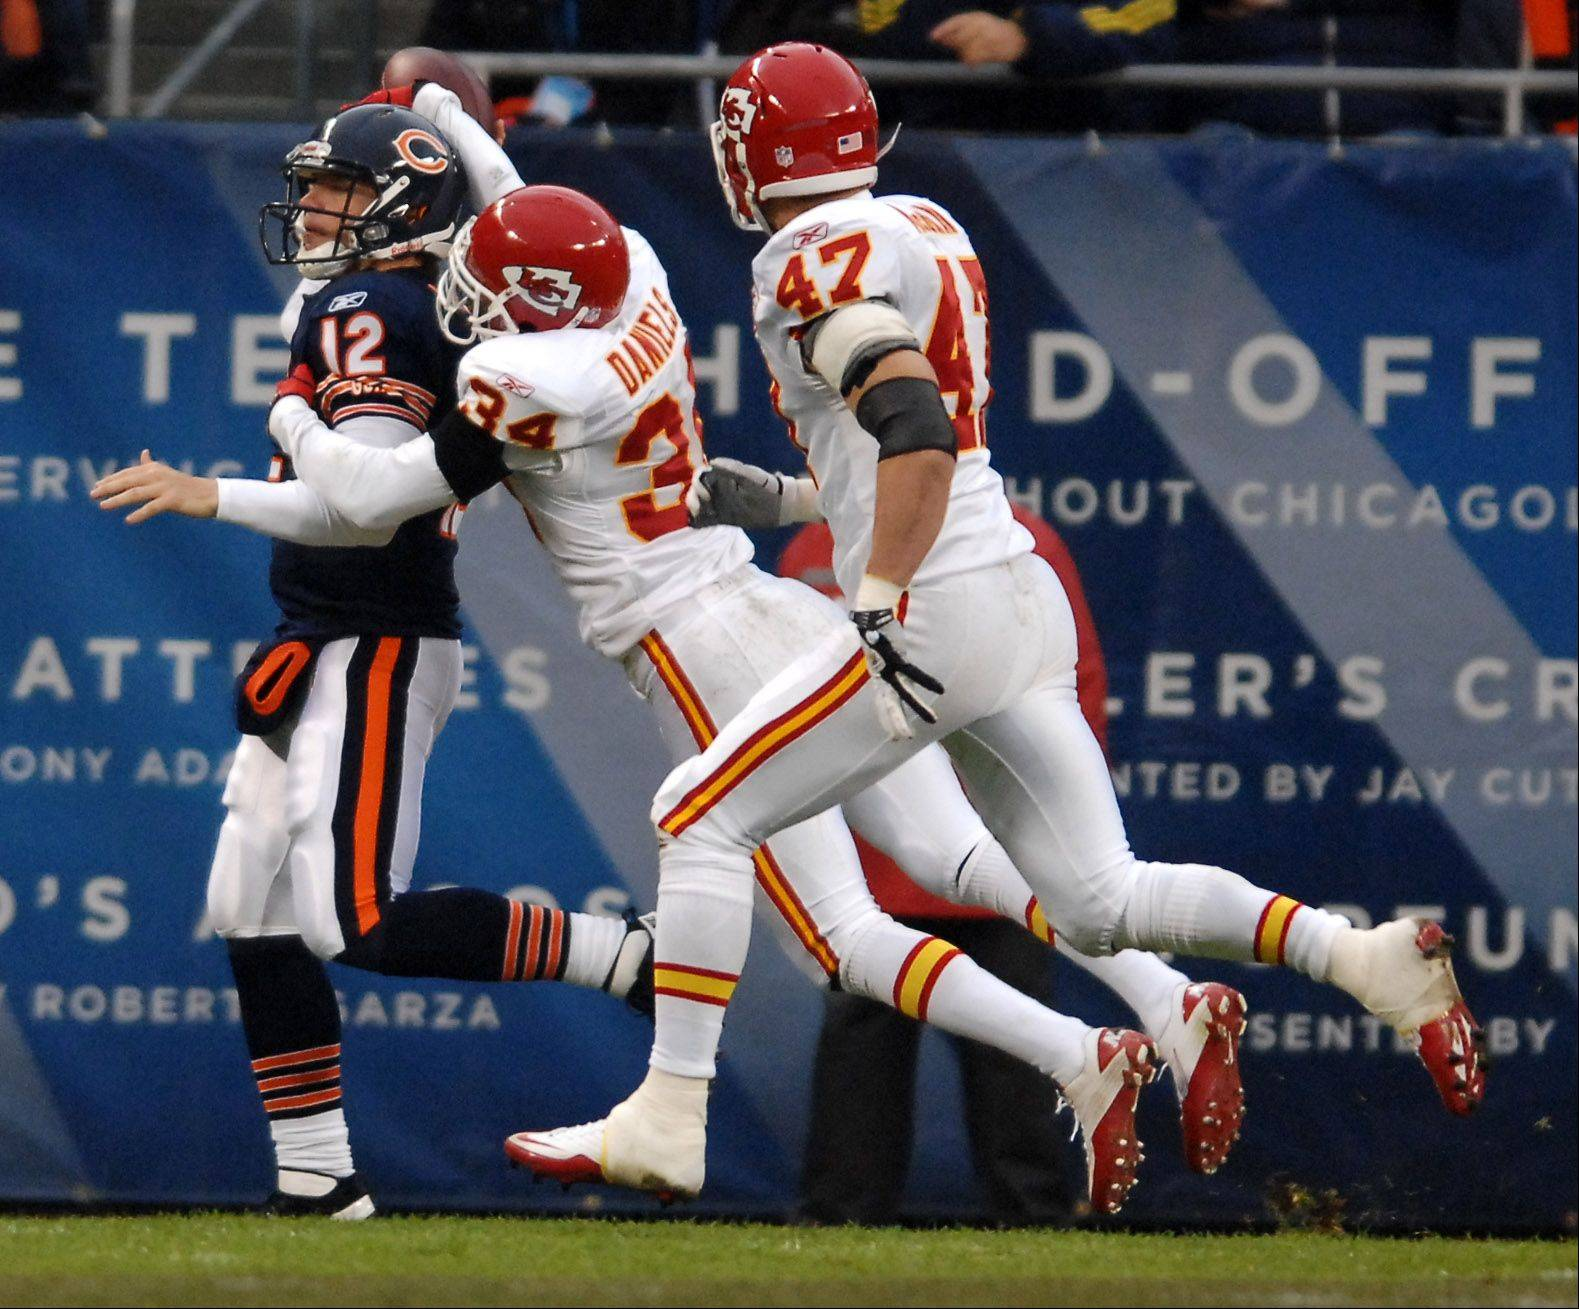 Rick West/rwest@dailyherald.comChicago Bears quarterback Caleb Hanie (12) is grabbed by Kansas City Chiefs defensive back Travis Daniels (34) as he tries to throw in the second quarter during Sunday's game at Soldier Field in Chicago.